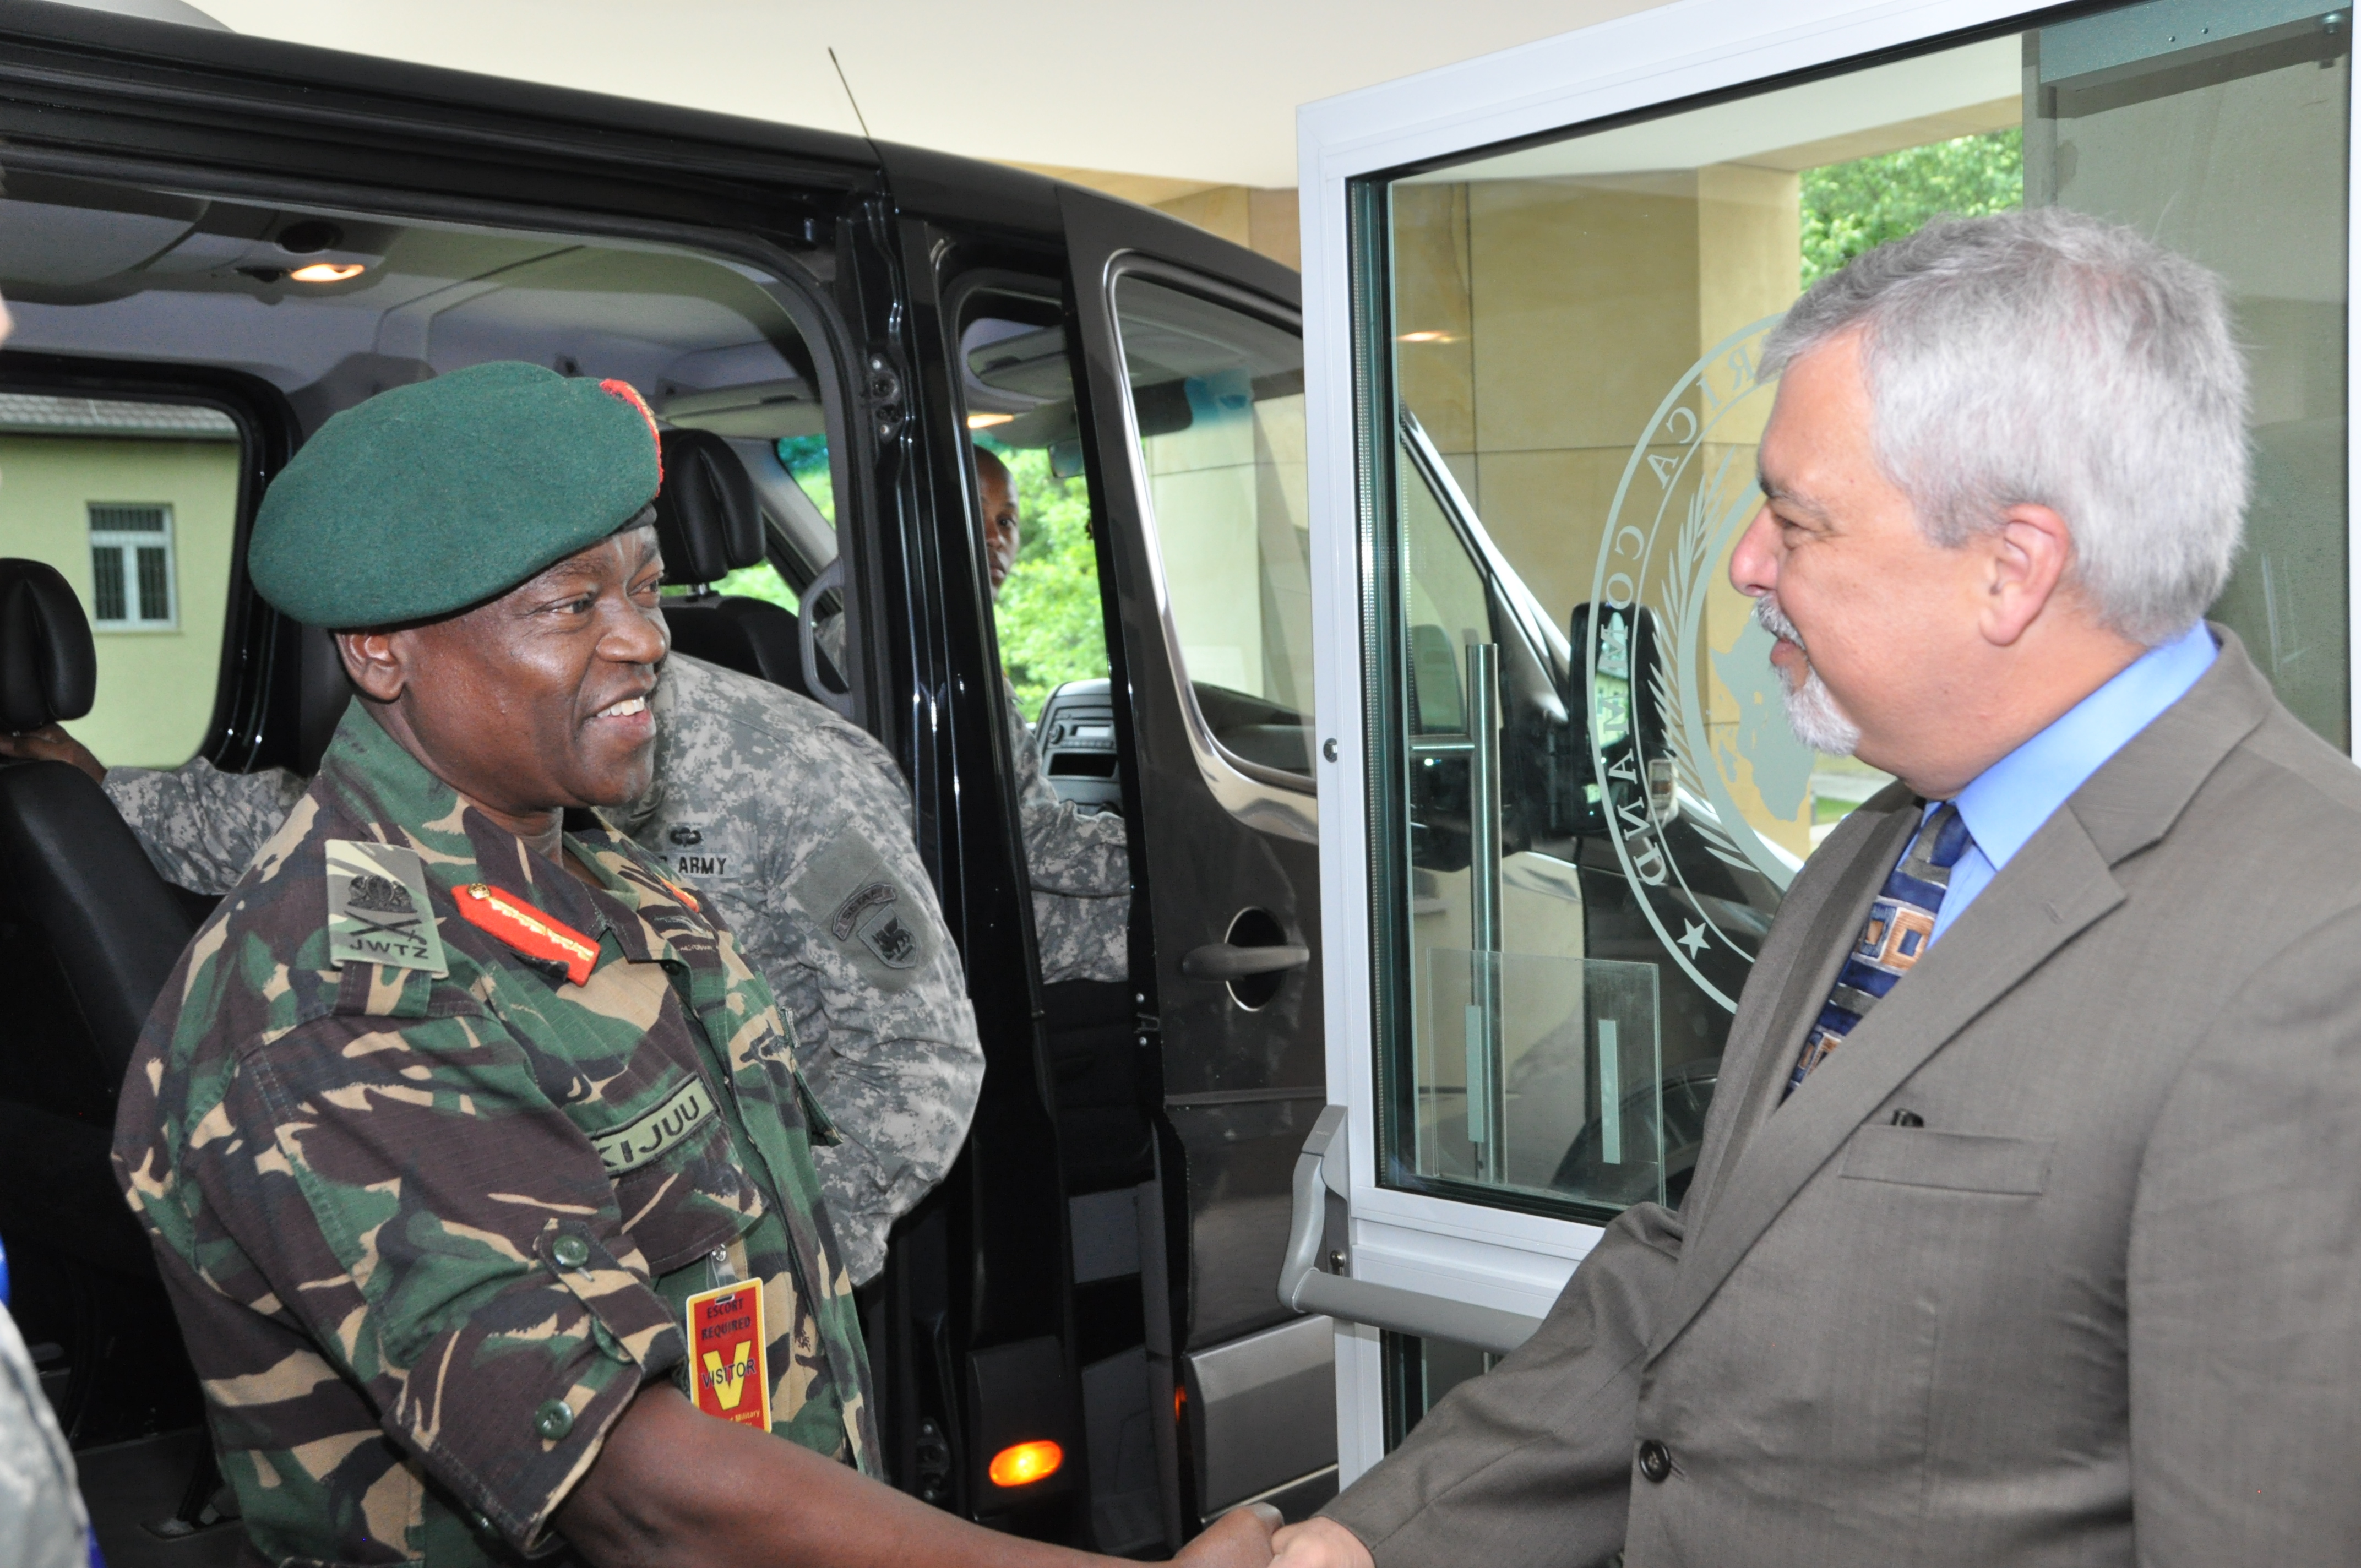 Ambassador Phillip Carter, III, deputy to the commander for civil-military engagement, greets Maj. Gen. Salim Mustafa Kijuu, land force commander of the Tanzanian People's Defence Force, during of a command sponsored visit coordinated by U.S. Army Africa July 8, 2015.